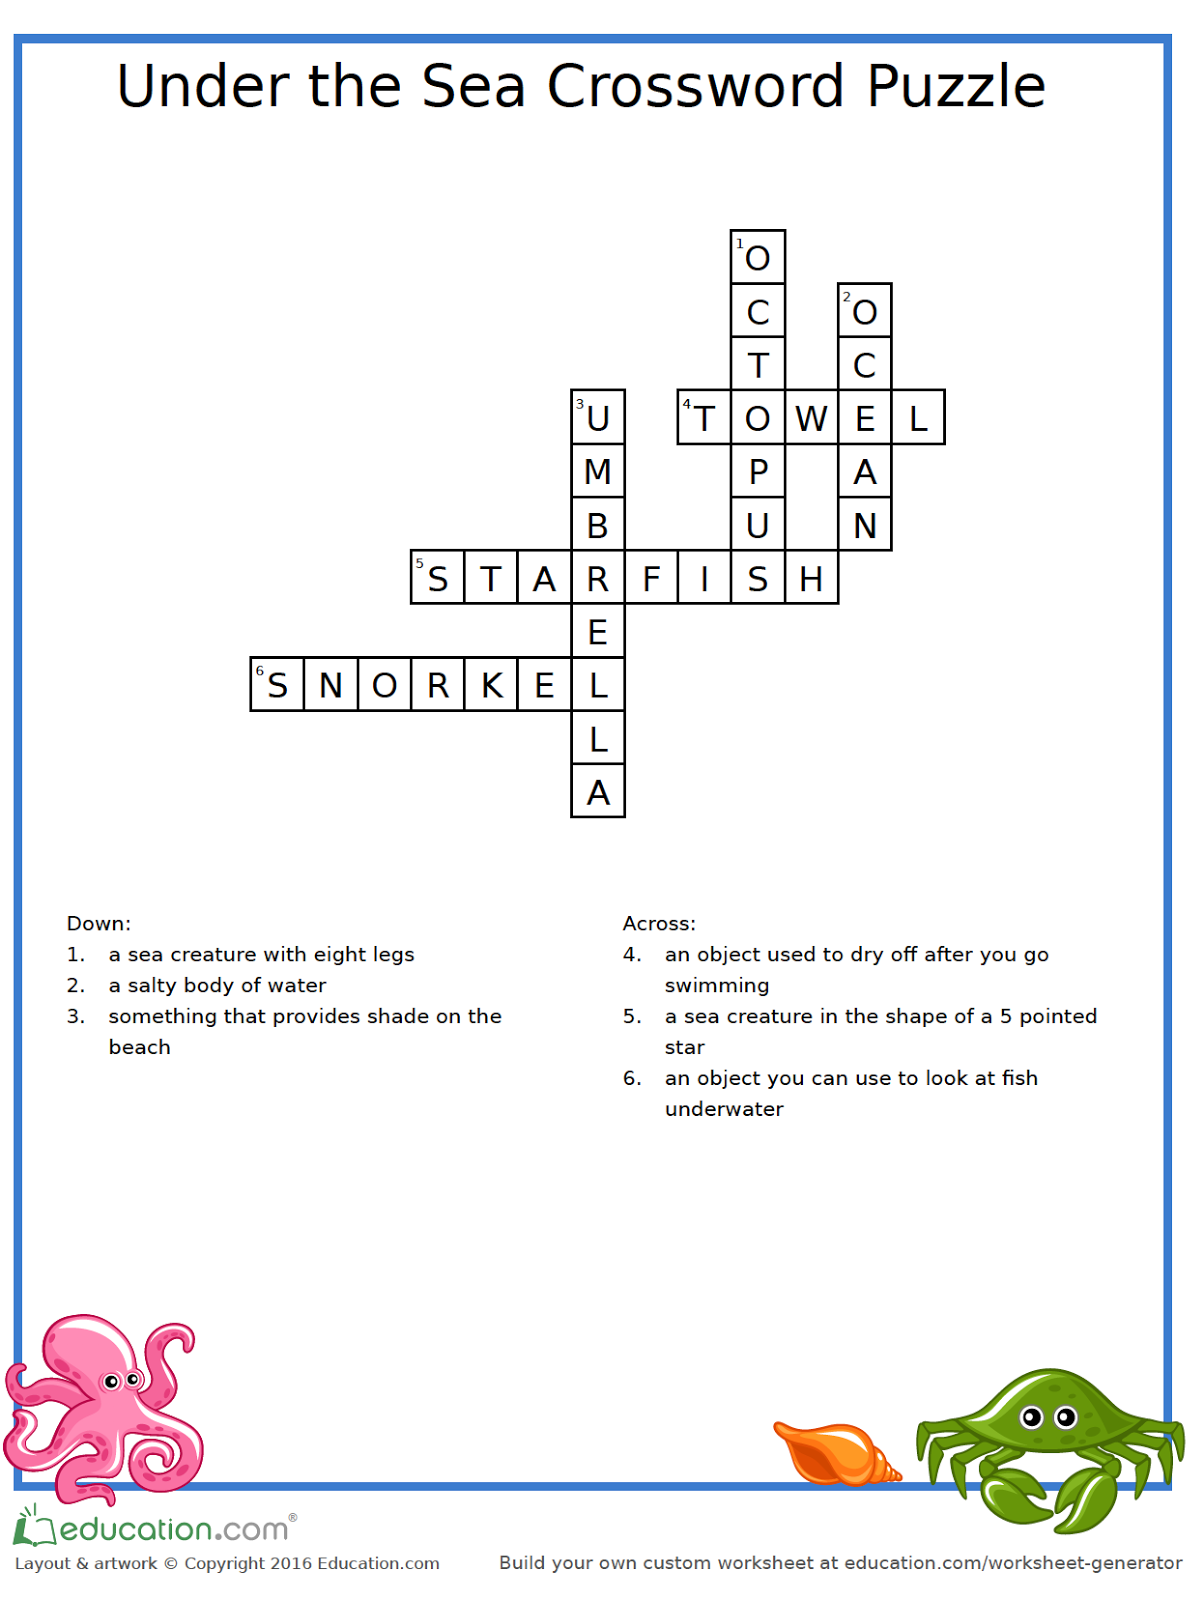 Kidz Learn Language: Ready for More Vocabulary Fun? Six More Ways I ...